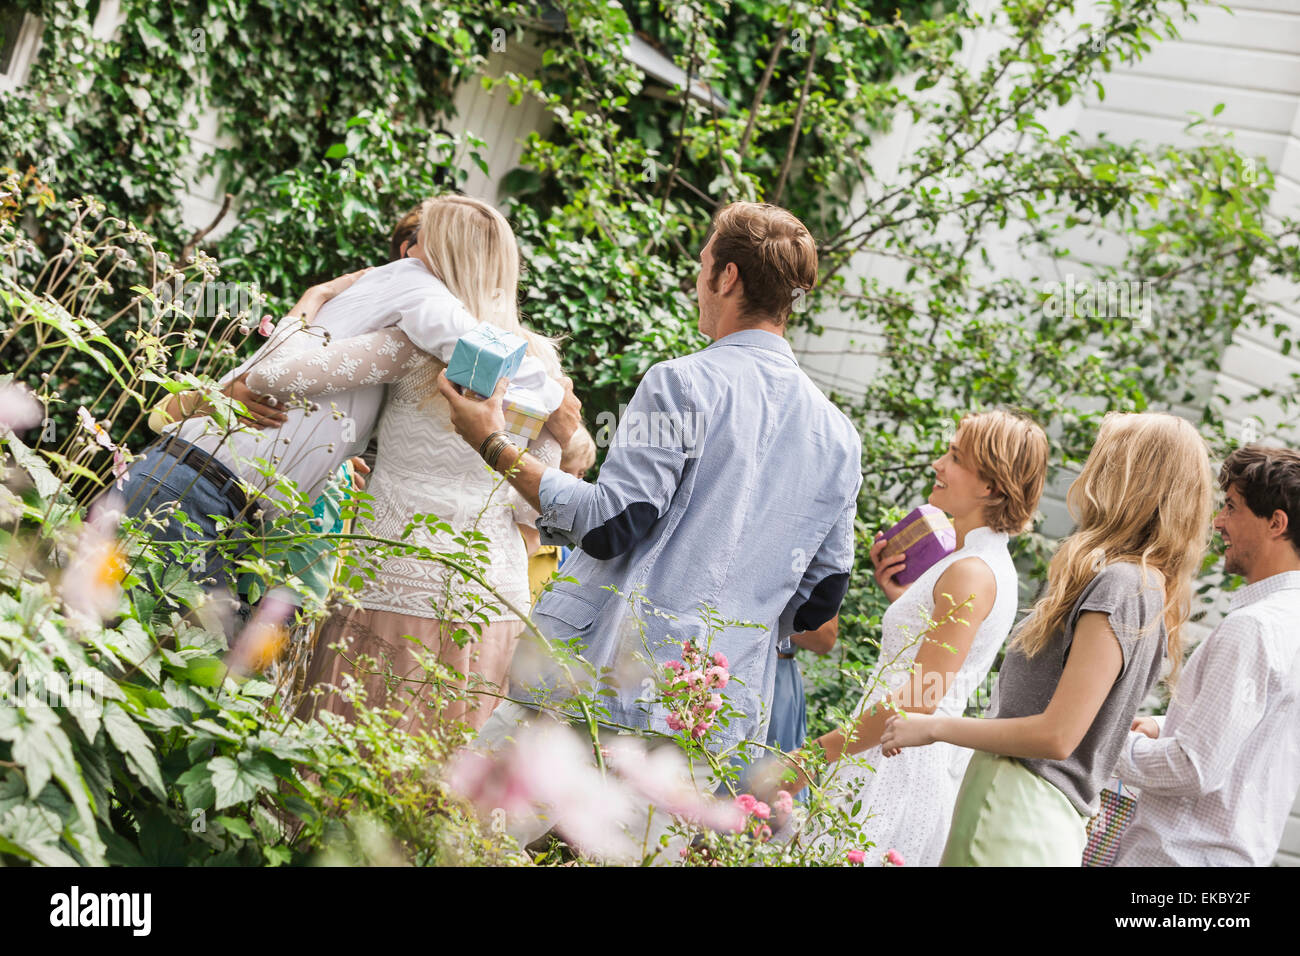 Mature couple greeting family in garden - Stock Image